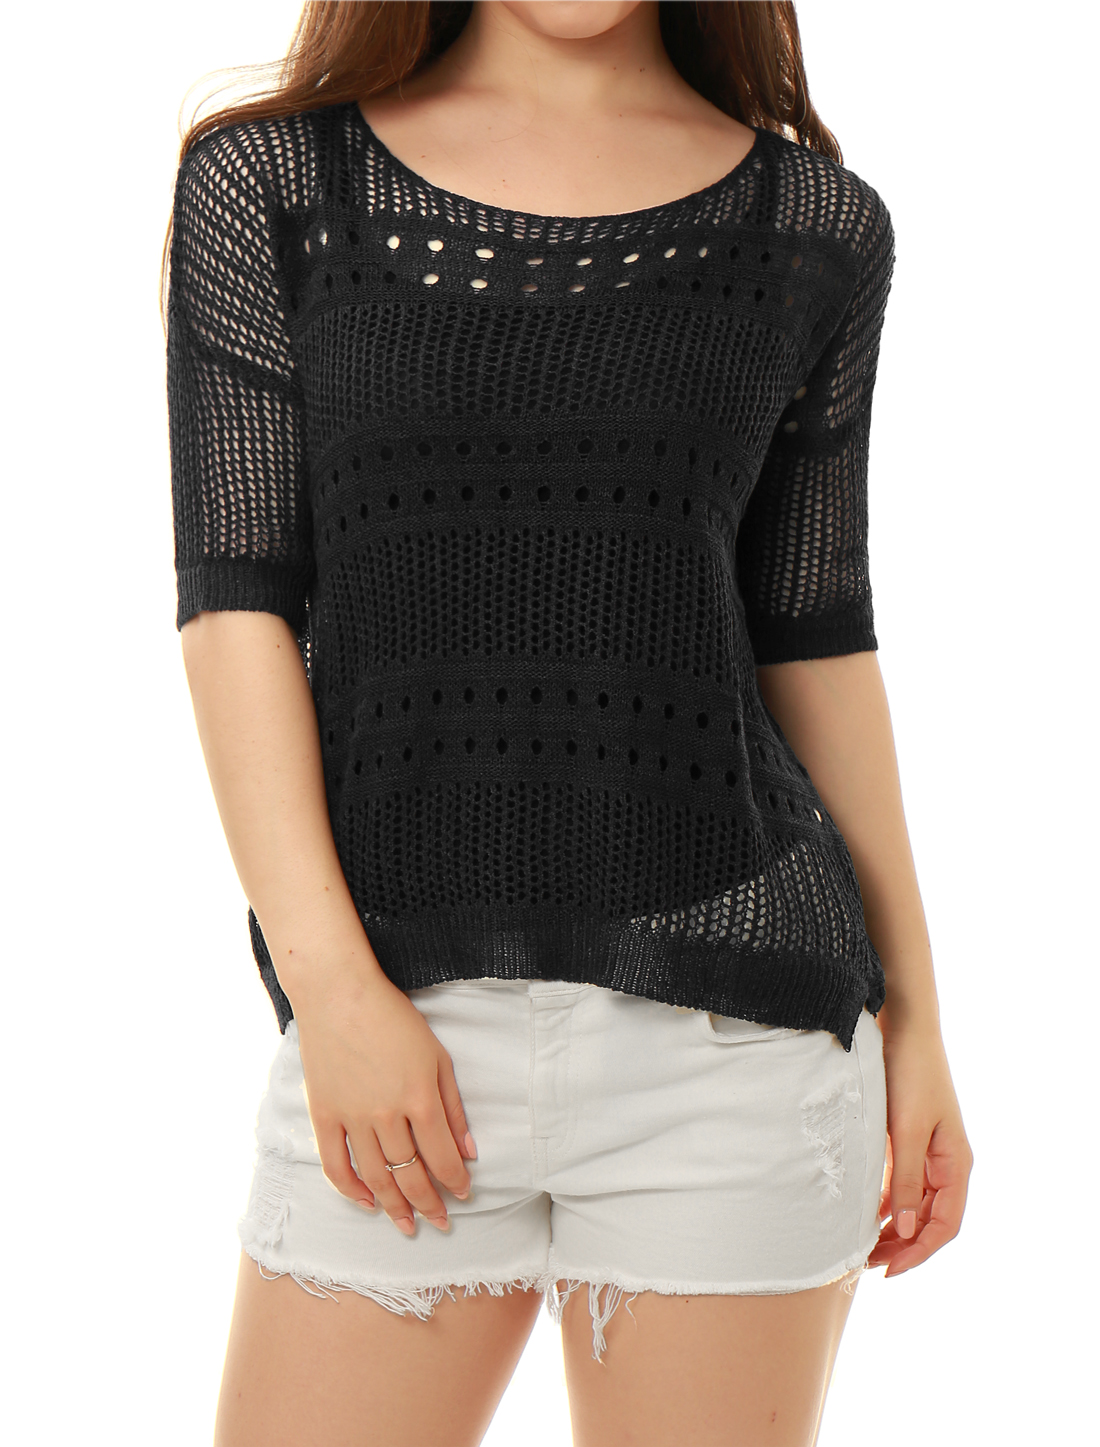 Ladies Elbow Sleeves Hollow Out High Low Hem Knit Shirt Black XS